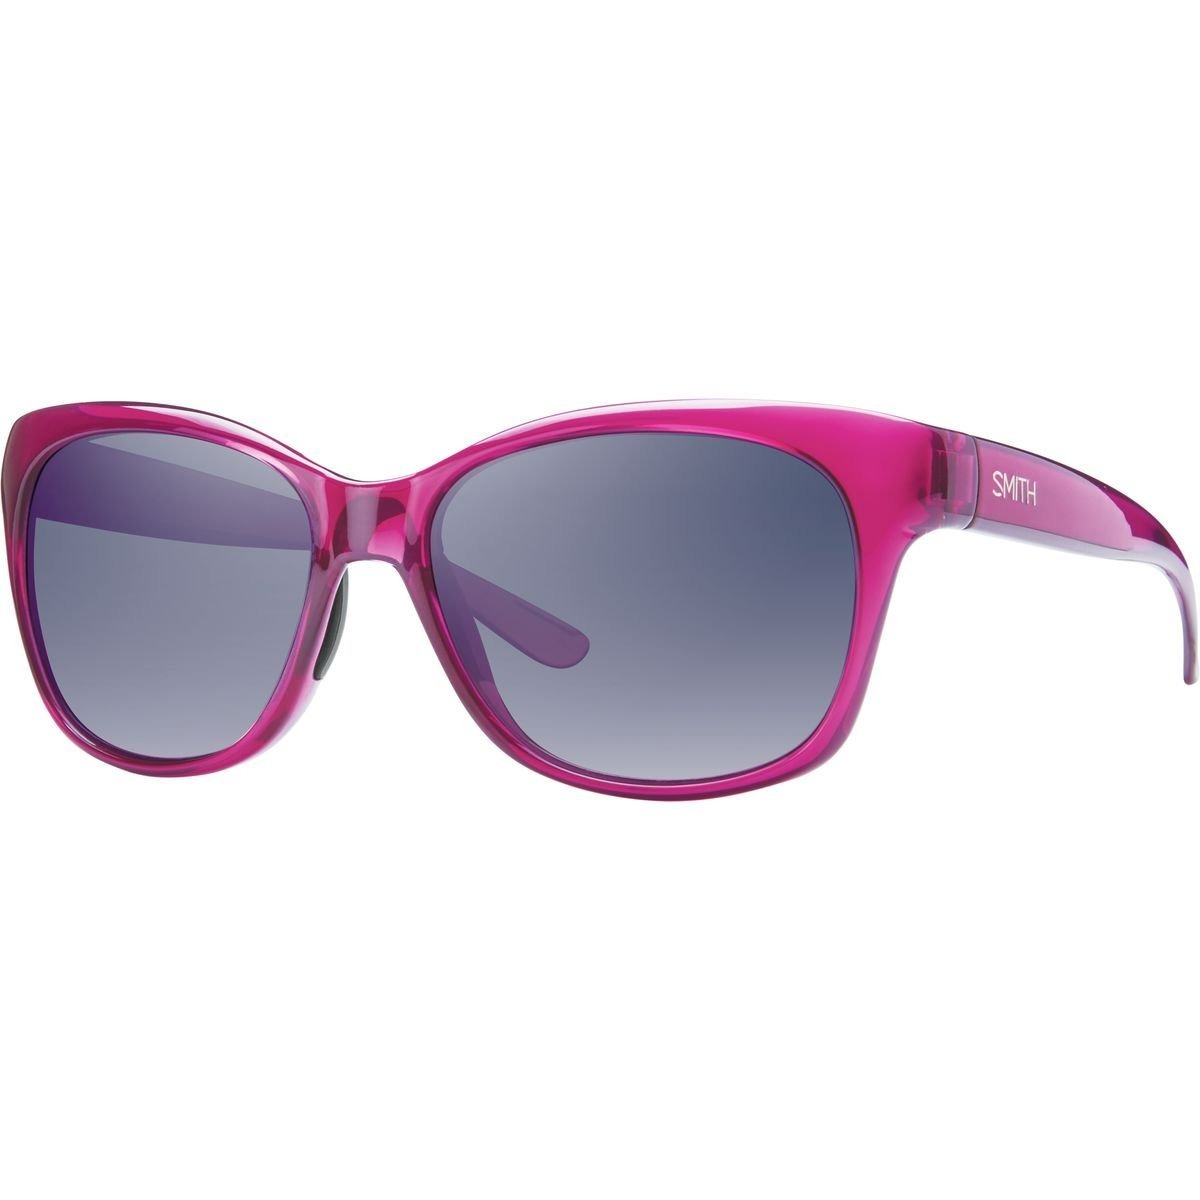 Gafas De Optics Para Sol Smith Mujer qzpMVGjSLU